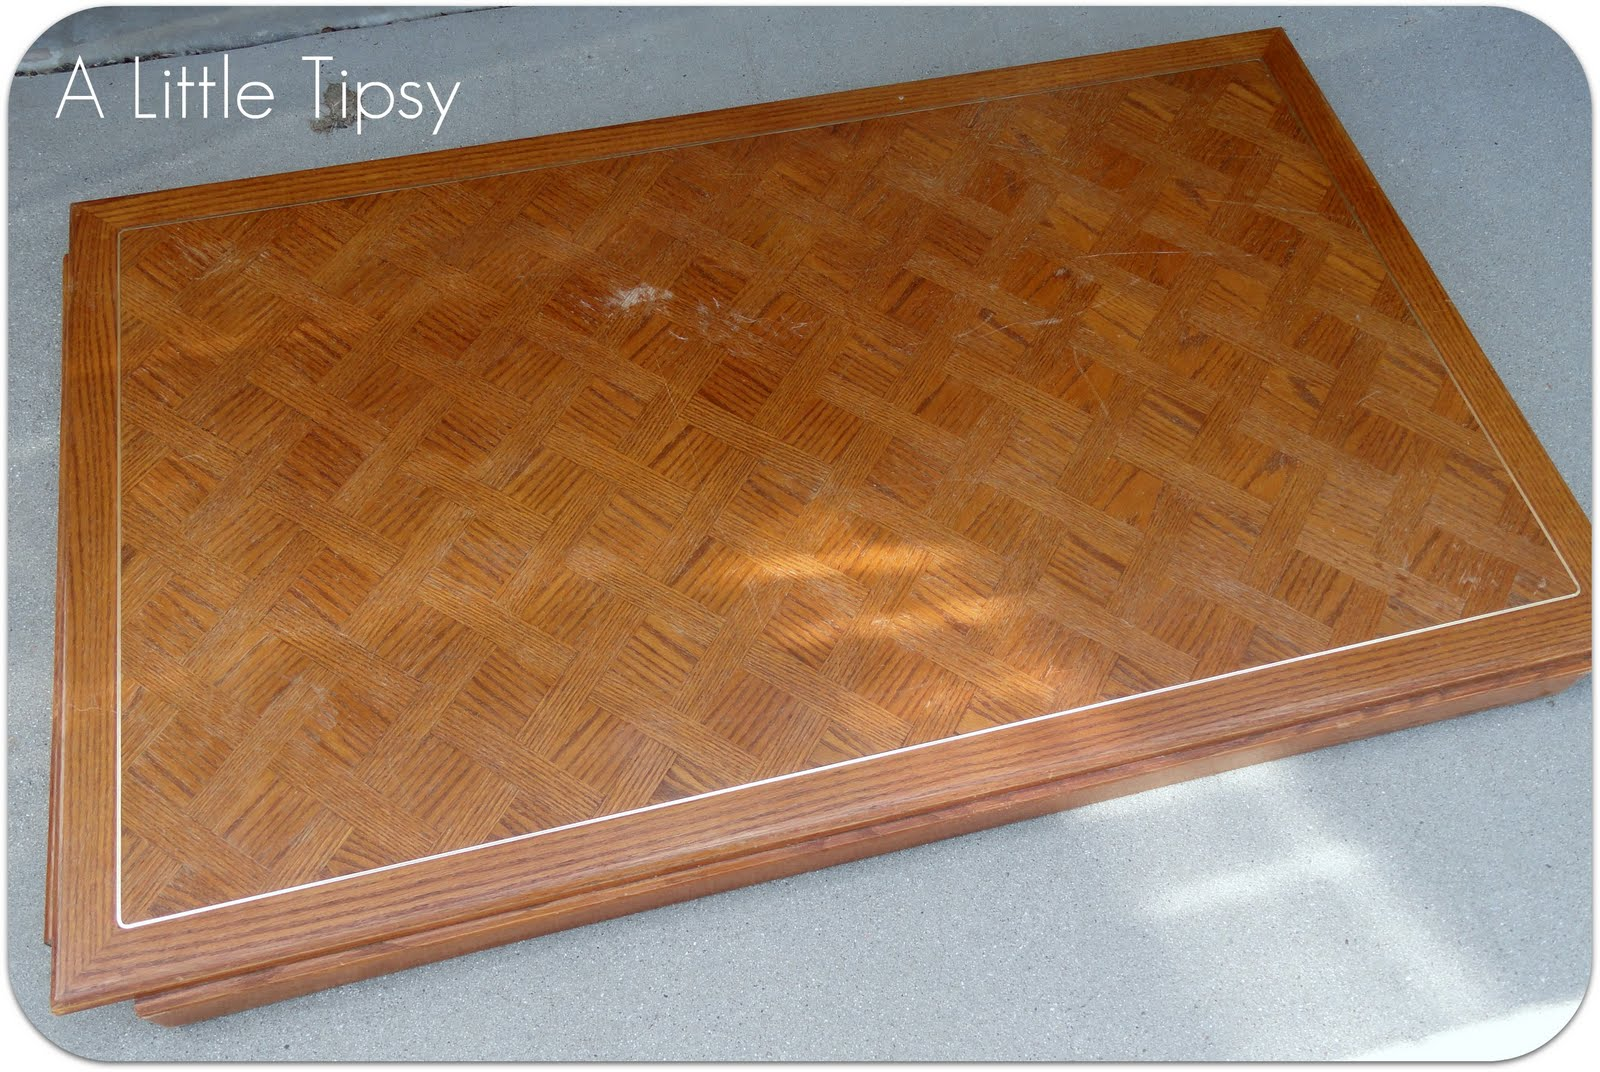 A Little Tipsy: Game Table featuring Krylon Dual Paint